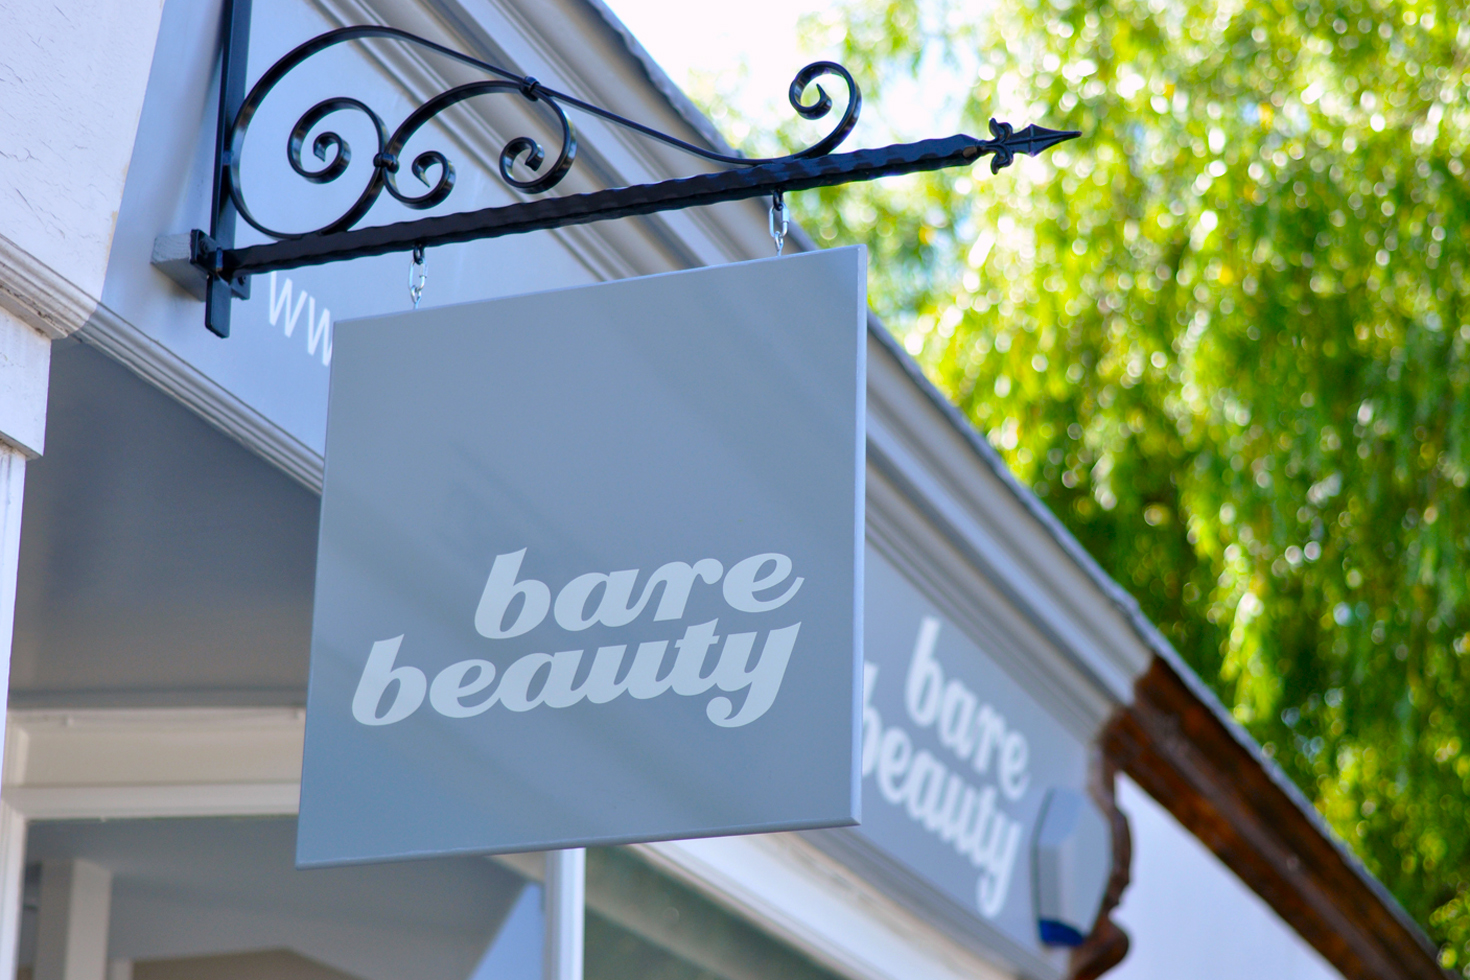 Bare Beauty shop front and sign